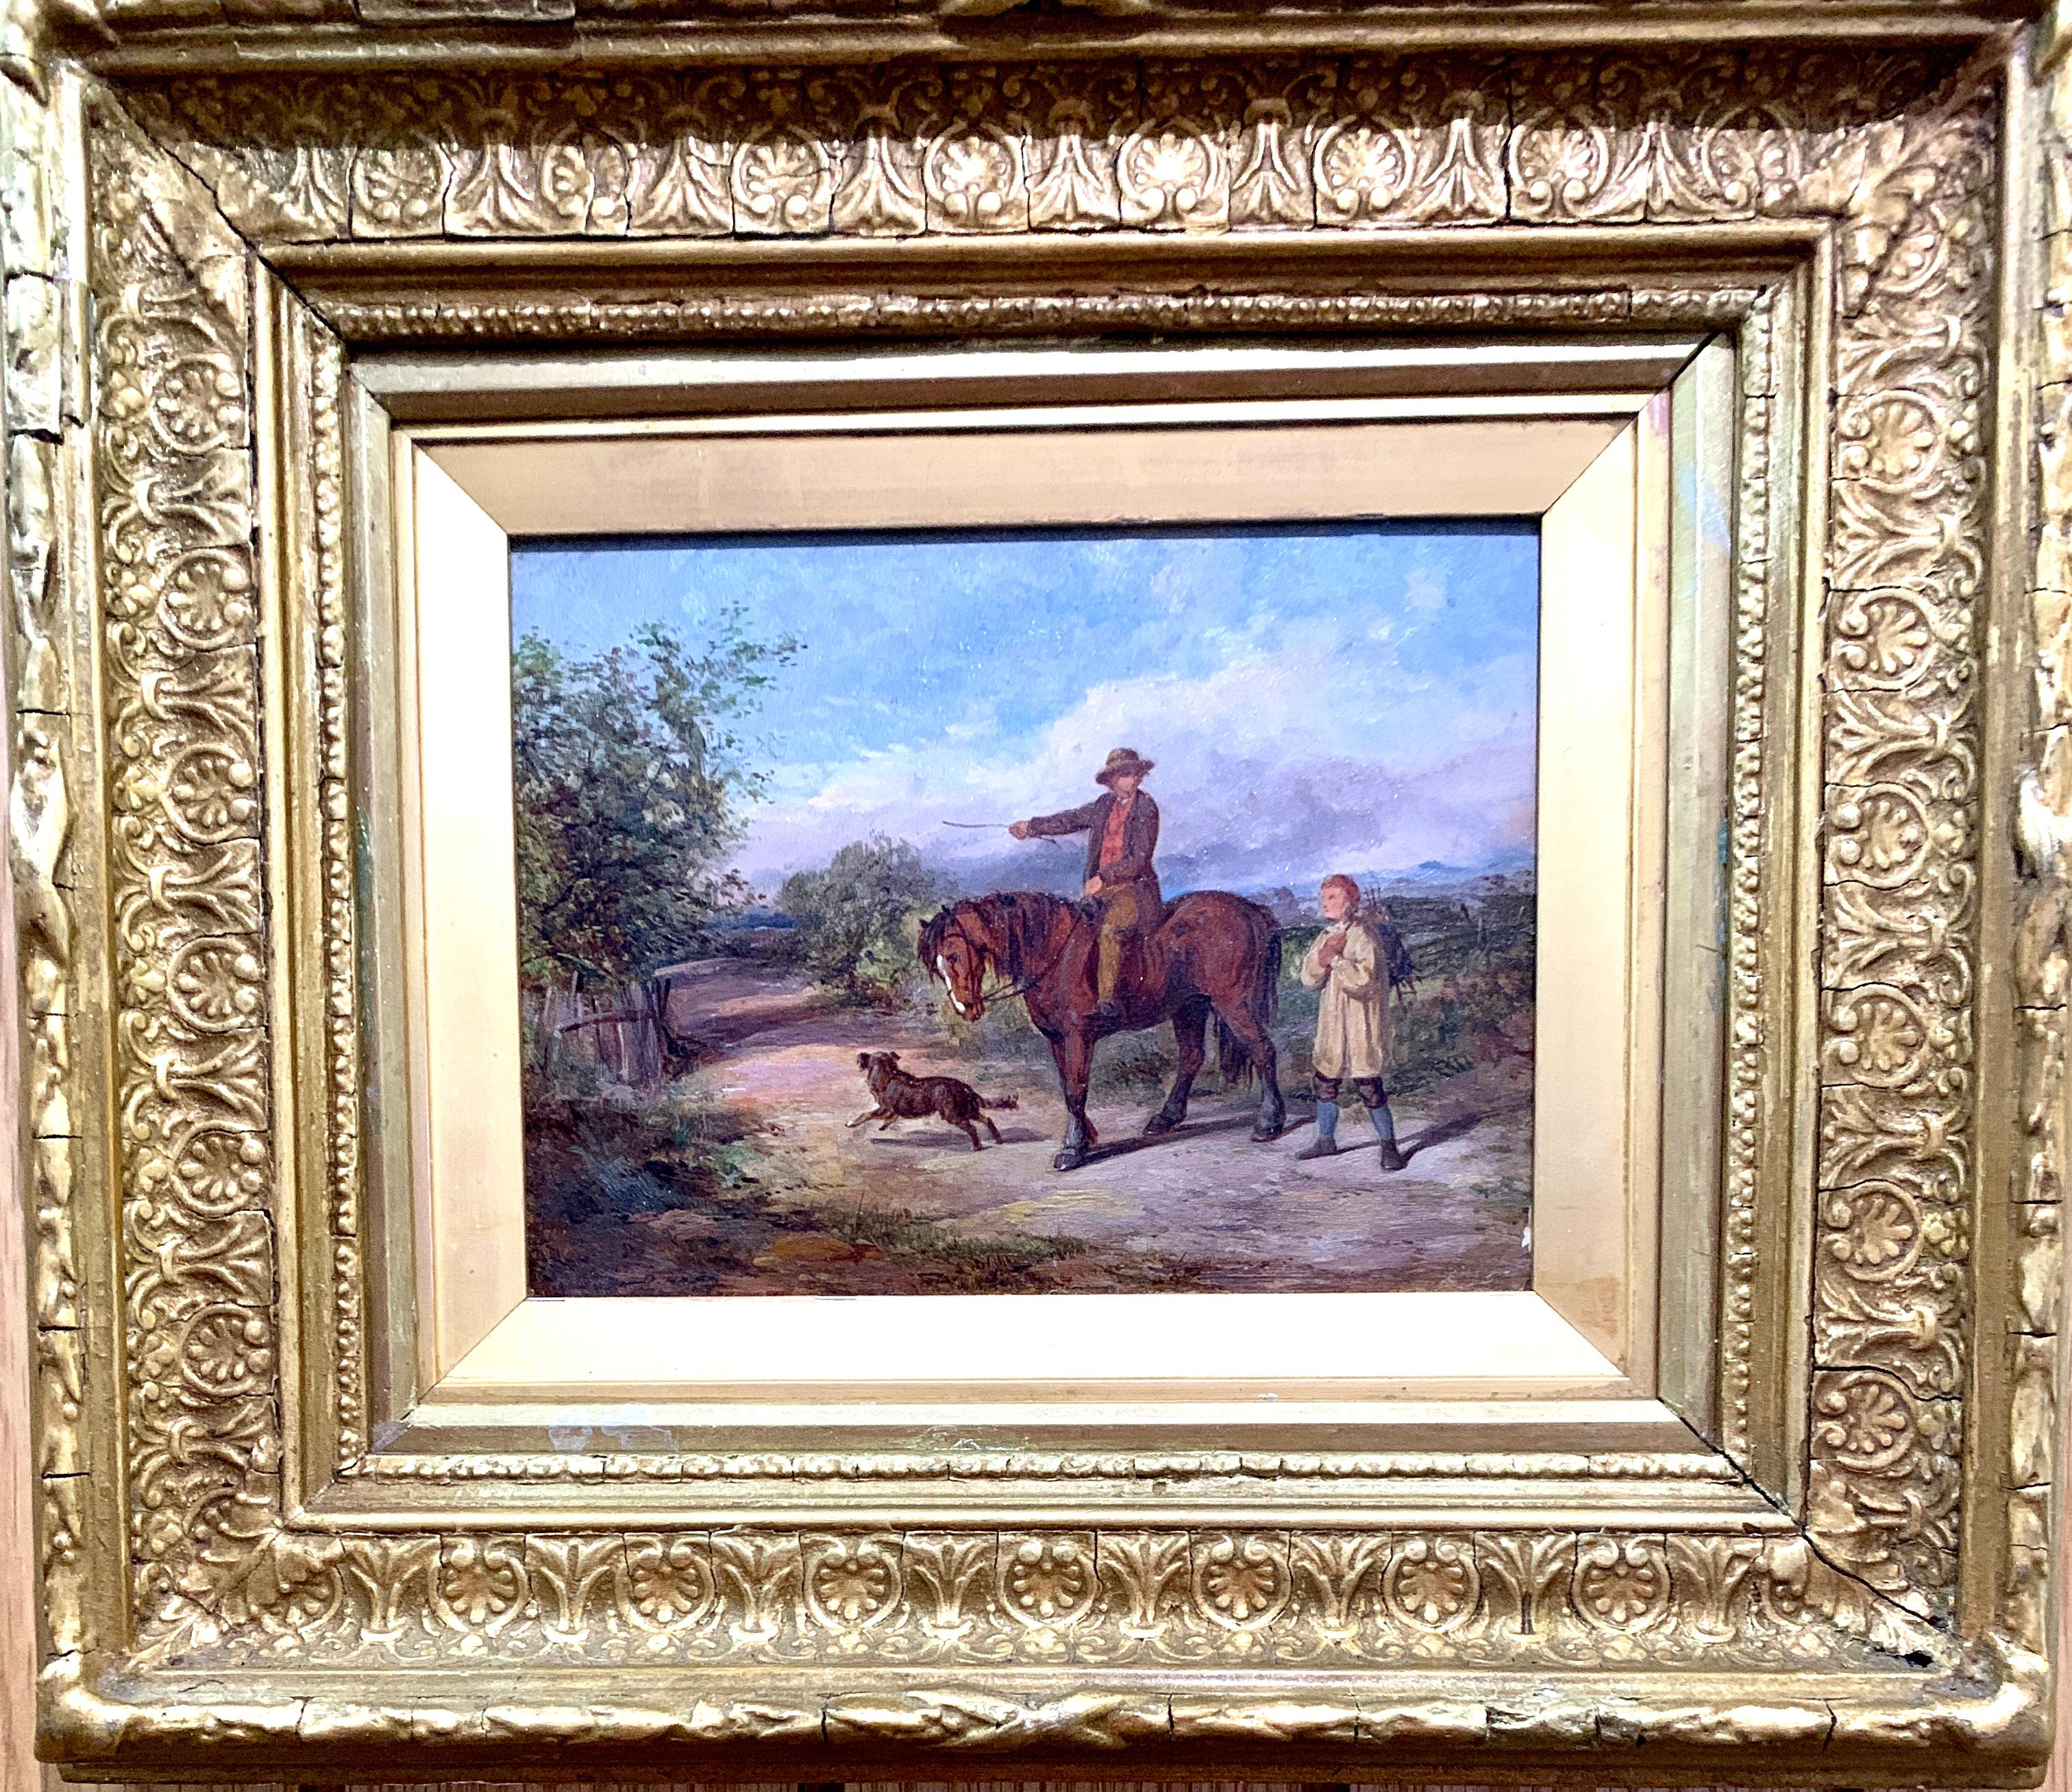 Antique English 19th century man with horse in landscape on pathway with friend